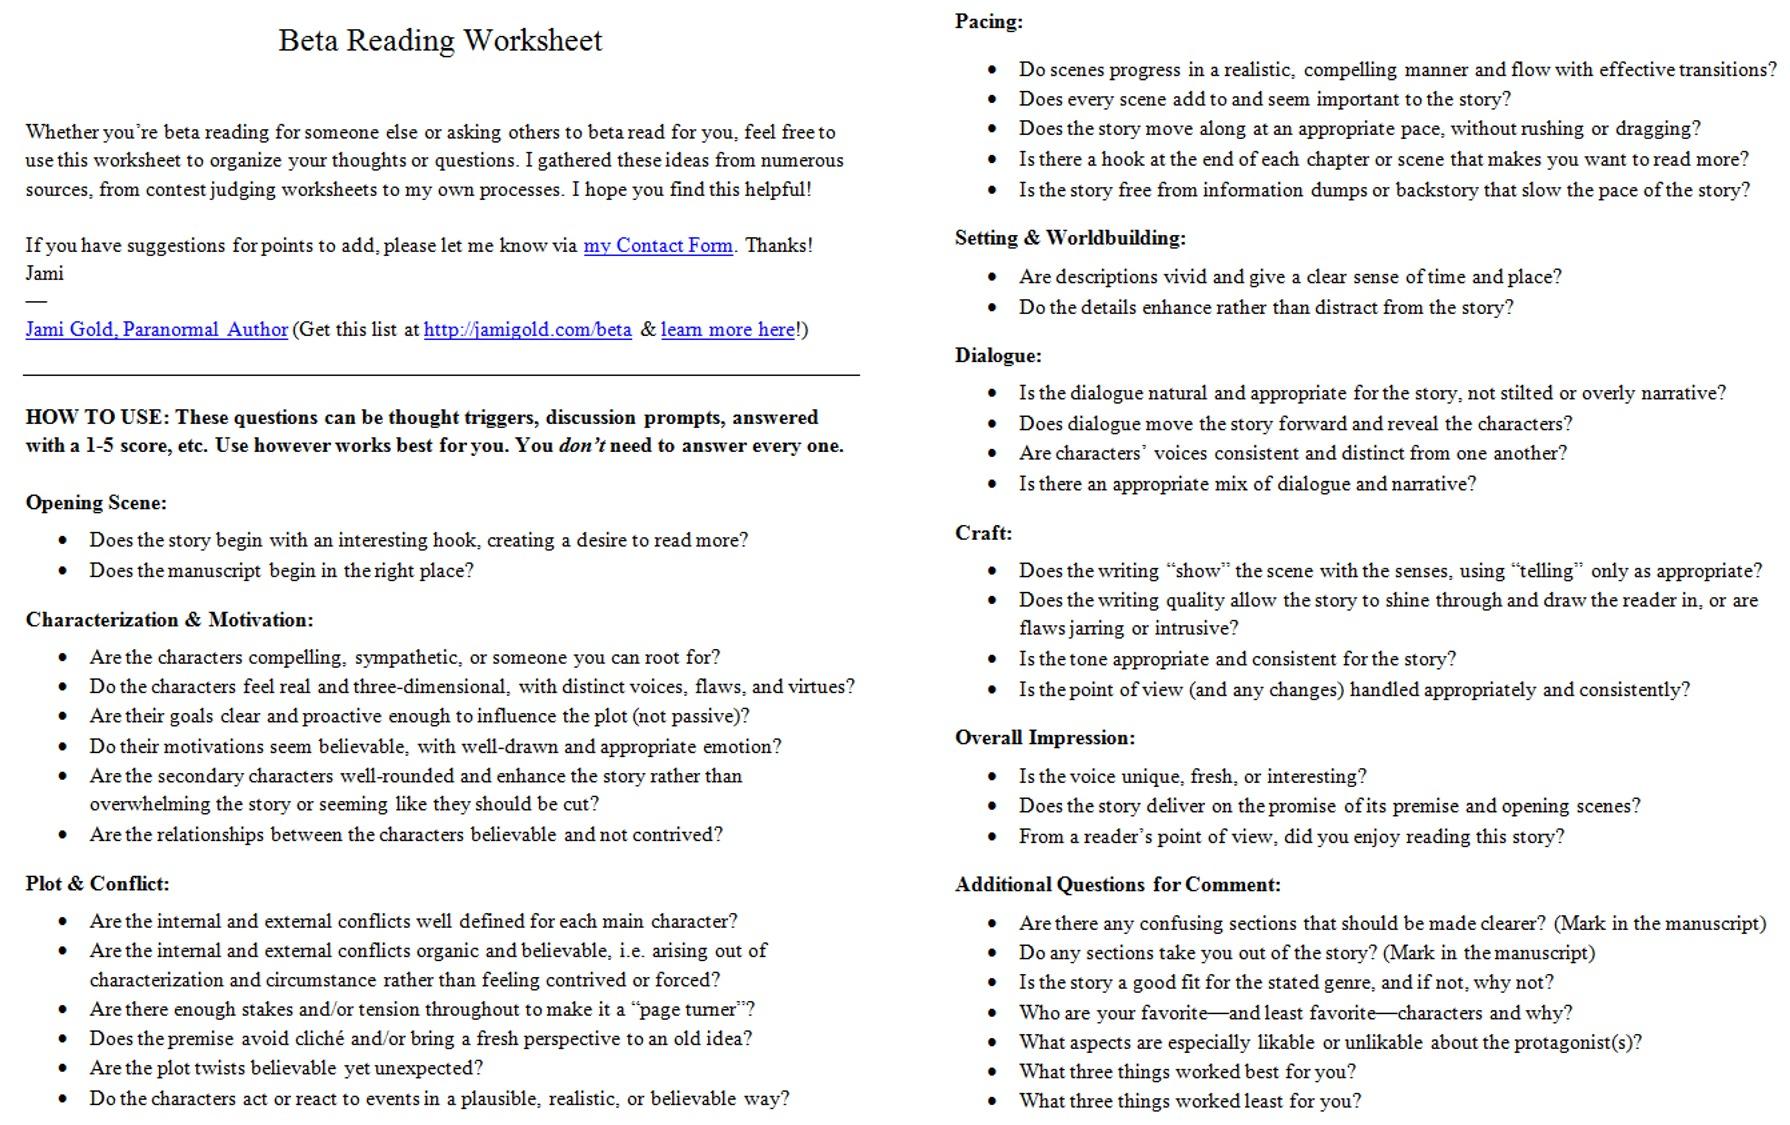 Weirdmailus  Pretty Worksheets For Writers  Jami Gold Paranormal Author With Great Screen Shot Of The Twopage Beta Reading Worksheet With Awesome Area Of Rectangles Worksheet Also Army Promotion Worksheet In Addition Character Study Worksheet And Sets Of Real Numbers Worksheet As Well As K Worksheets Additionally How To Tell Time Worksheets From Jamigoldcom With Weirdmailus  Great Worksheets For Writers  Jami Gold Paranormal Author With Awesome Screen Shot Of The Twopage Beta Reading Worksheet And Pretty Area Of Rectangles Worksheet Also Army Promotion Worksheet In Addition Character Study Worksheet From Jamigoldcom